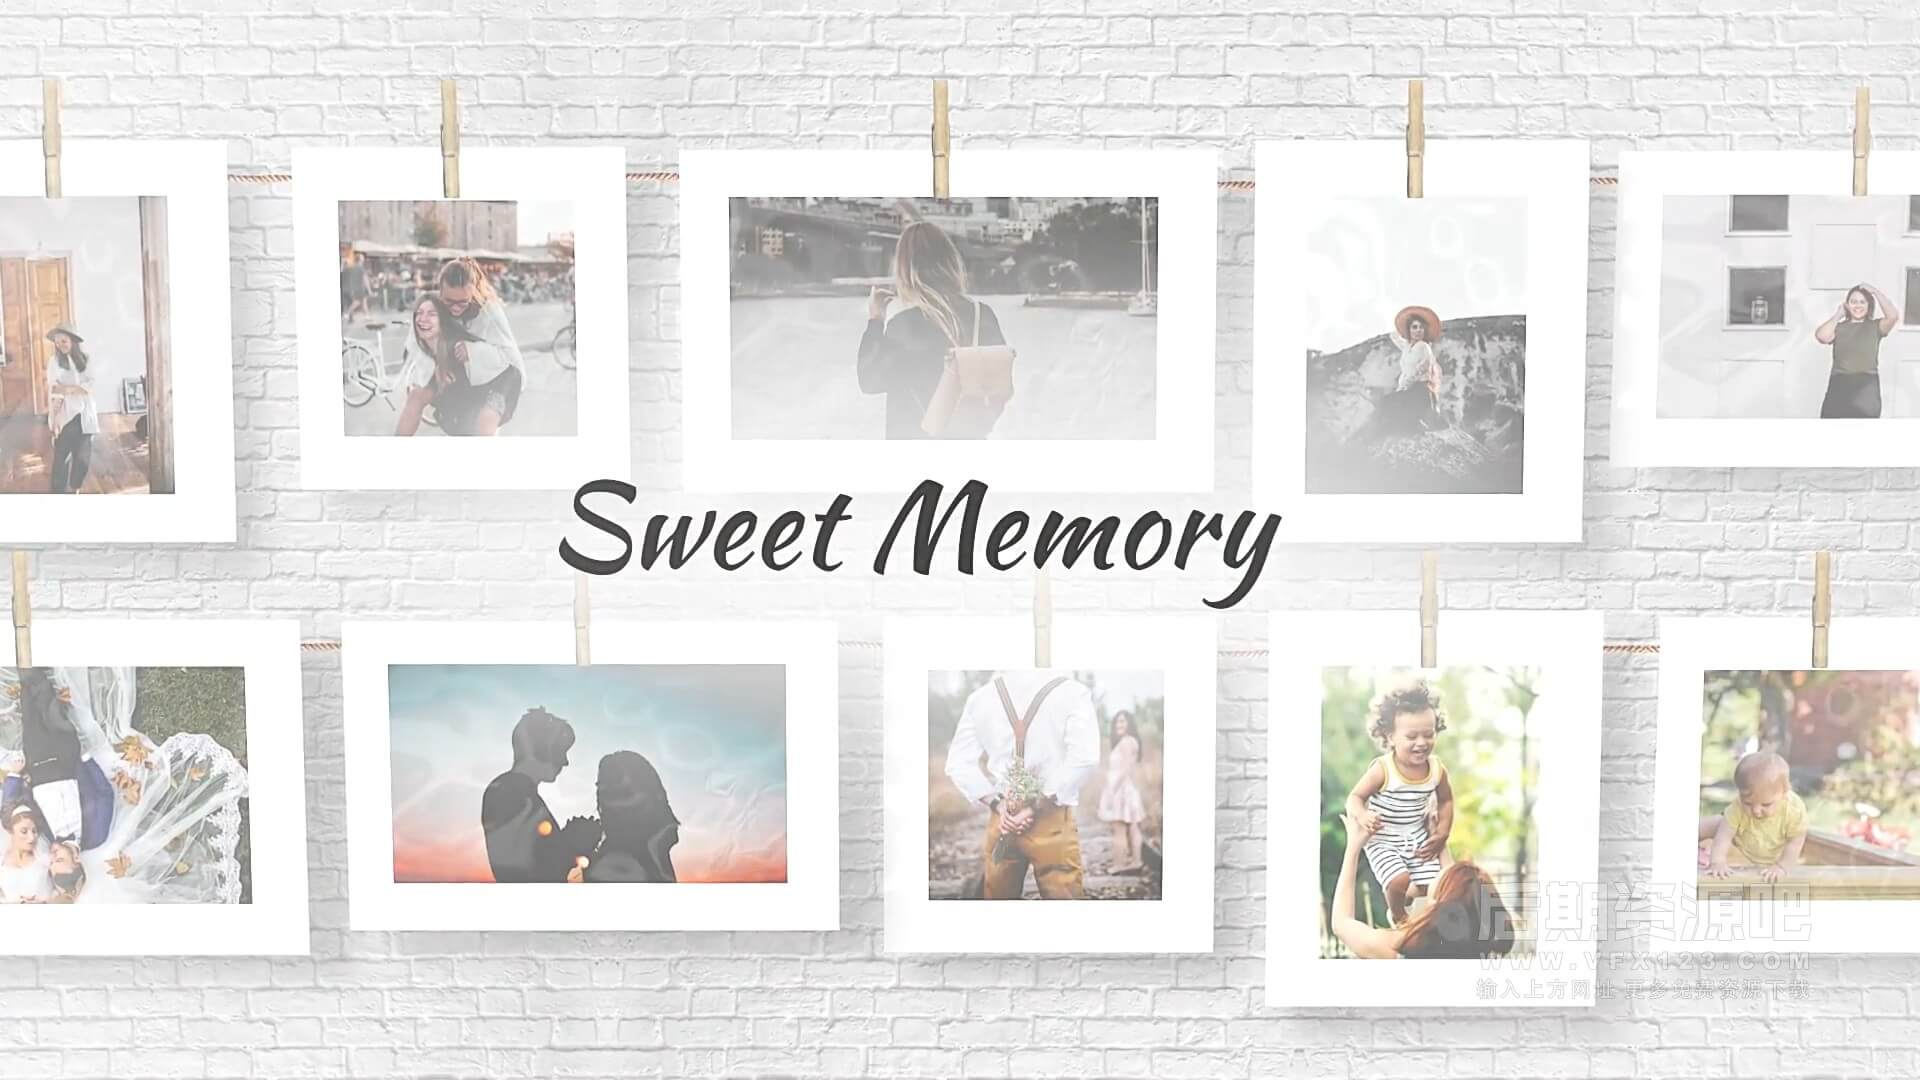 fcpx主题模板 甜蜜记忆图文展示相册片头模板 Sweet Memories